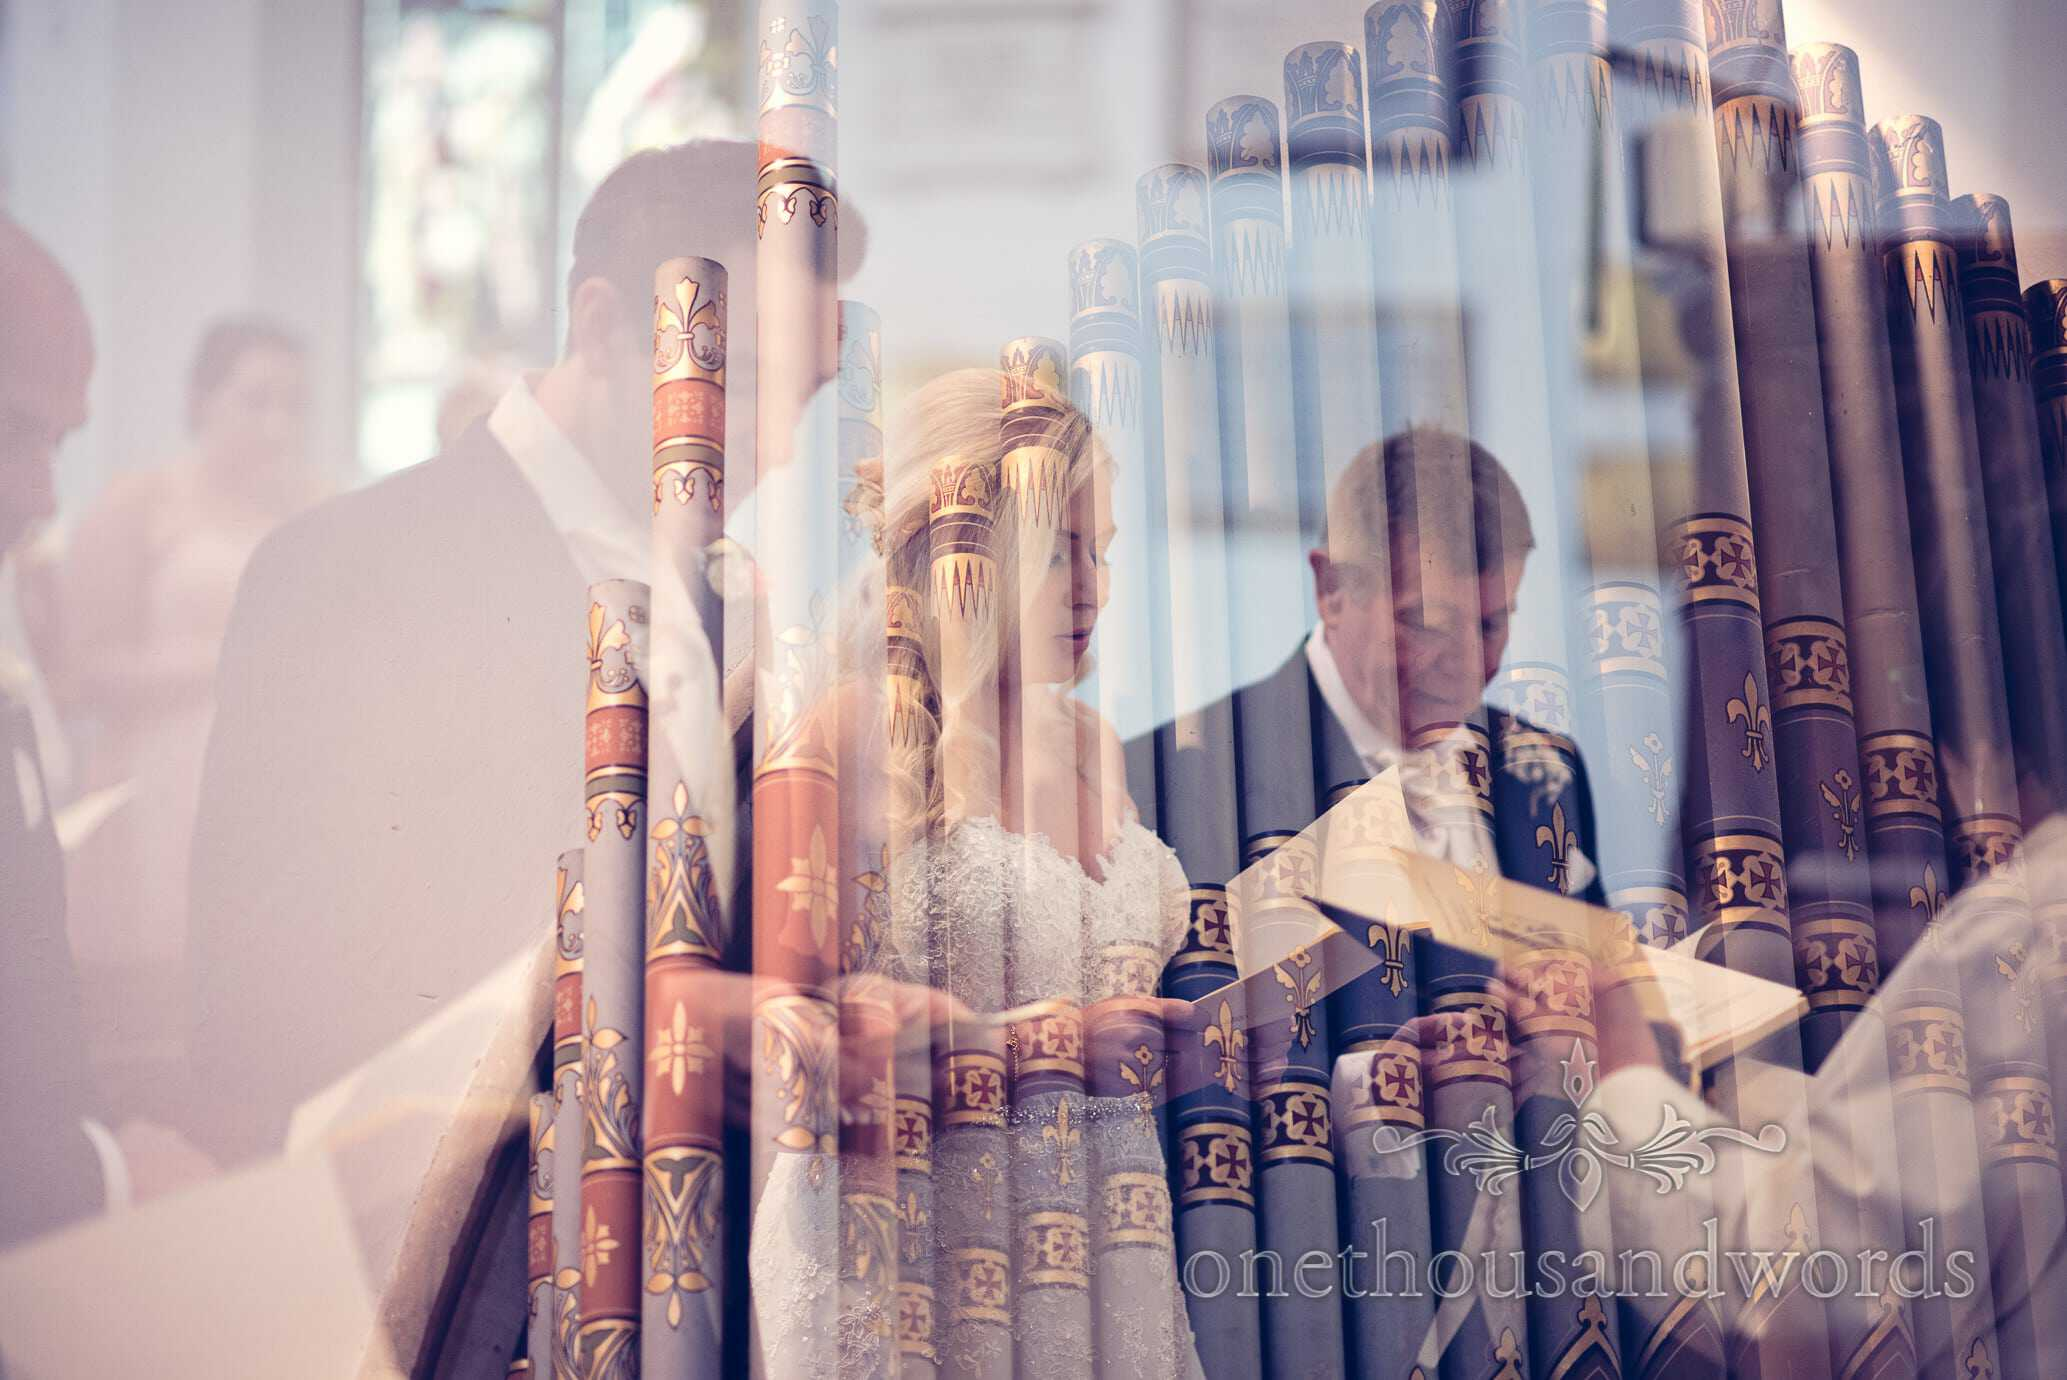 Double exposure photograph of organ pipes and wedding singing